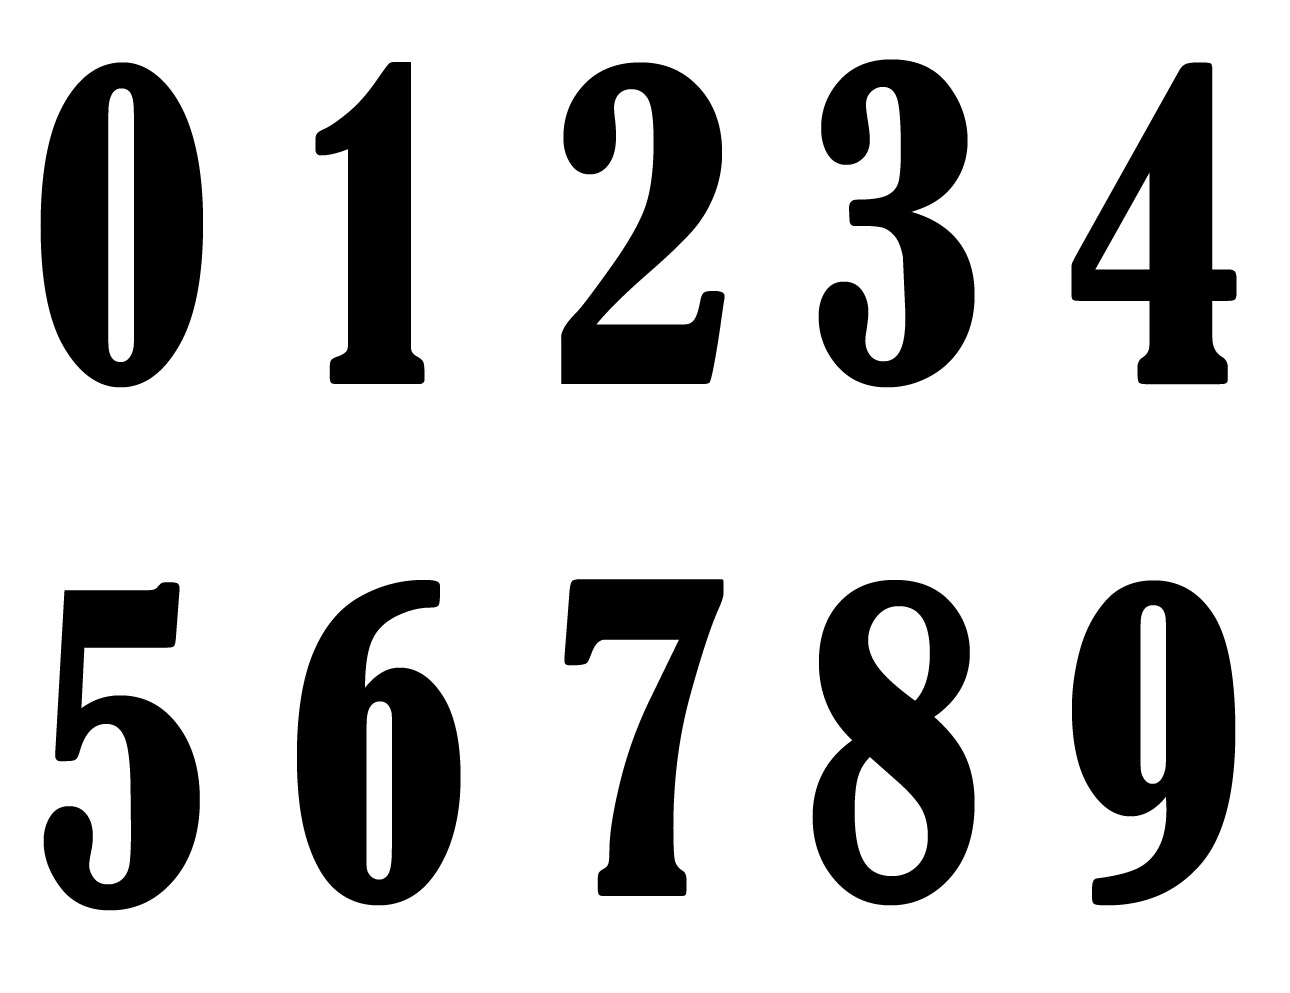 Maurits Burgers: Digits Spelling Number Poetry, Nadazero